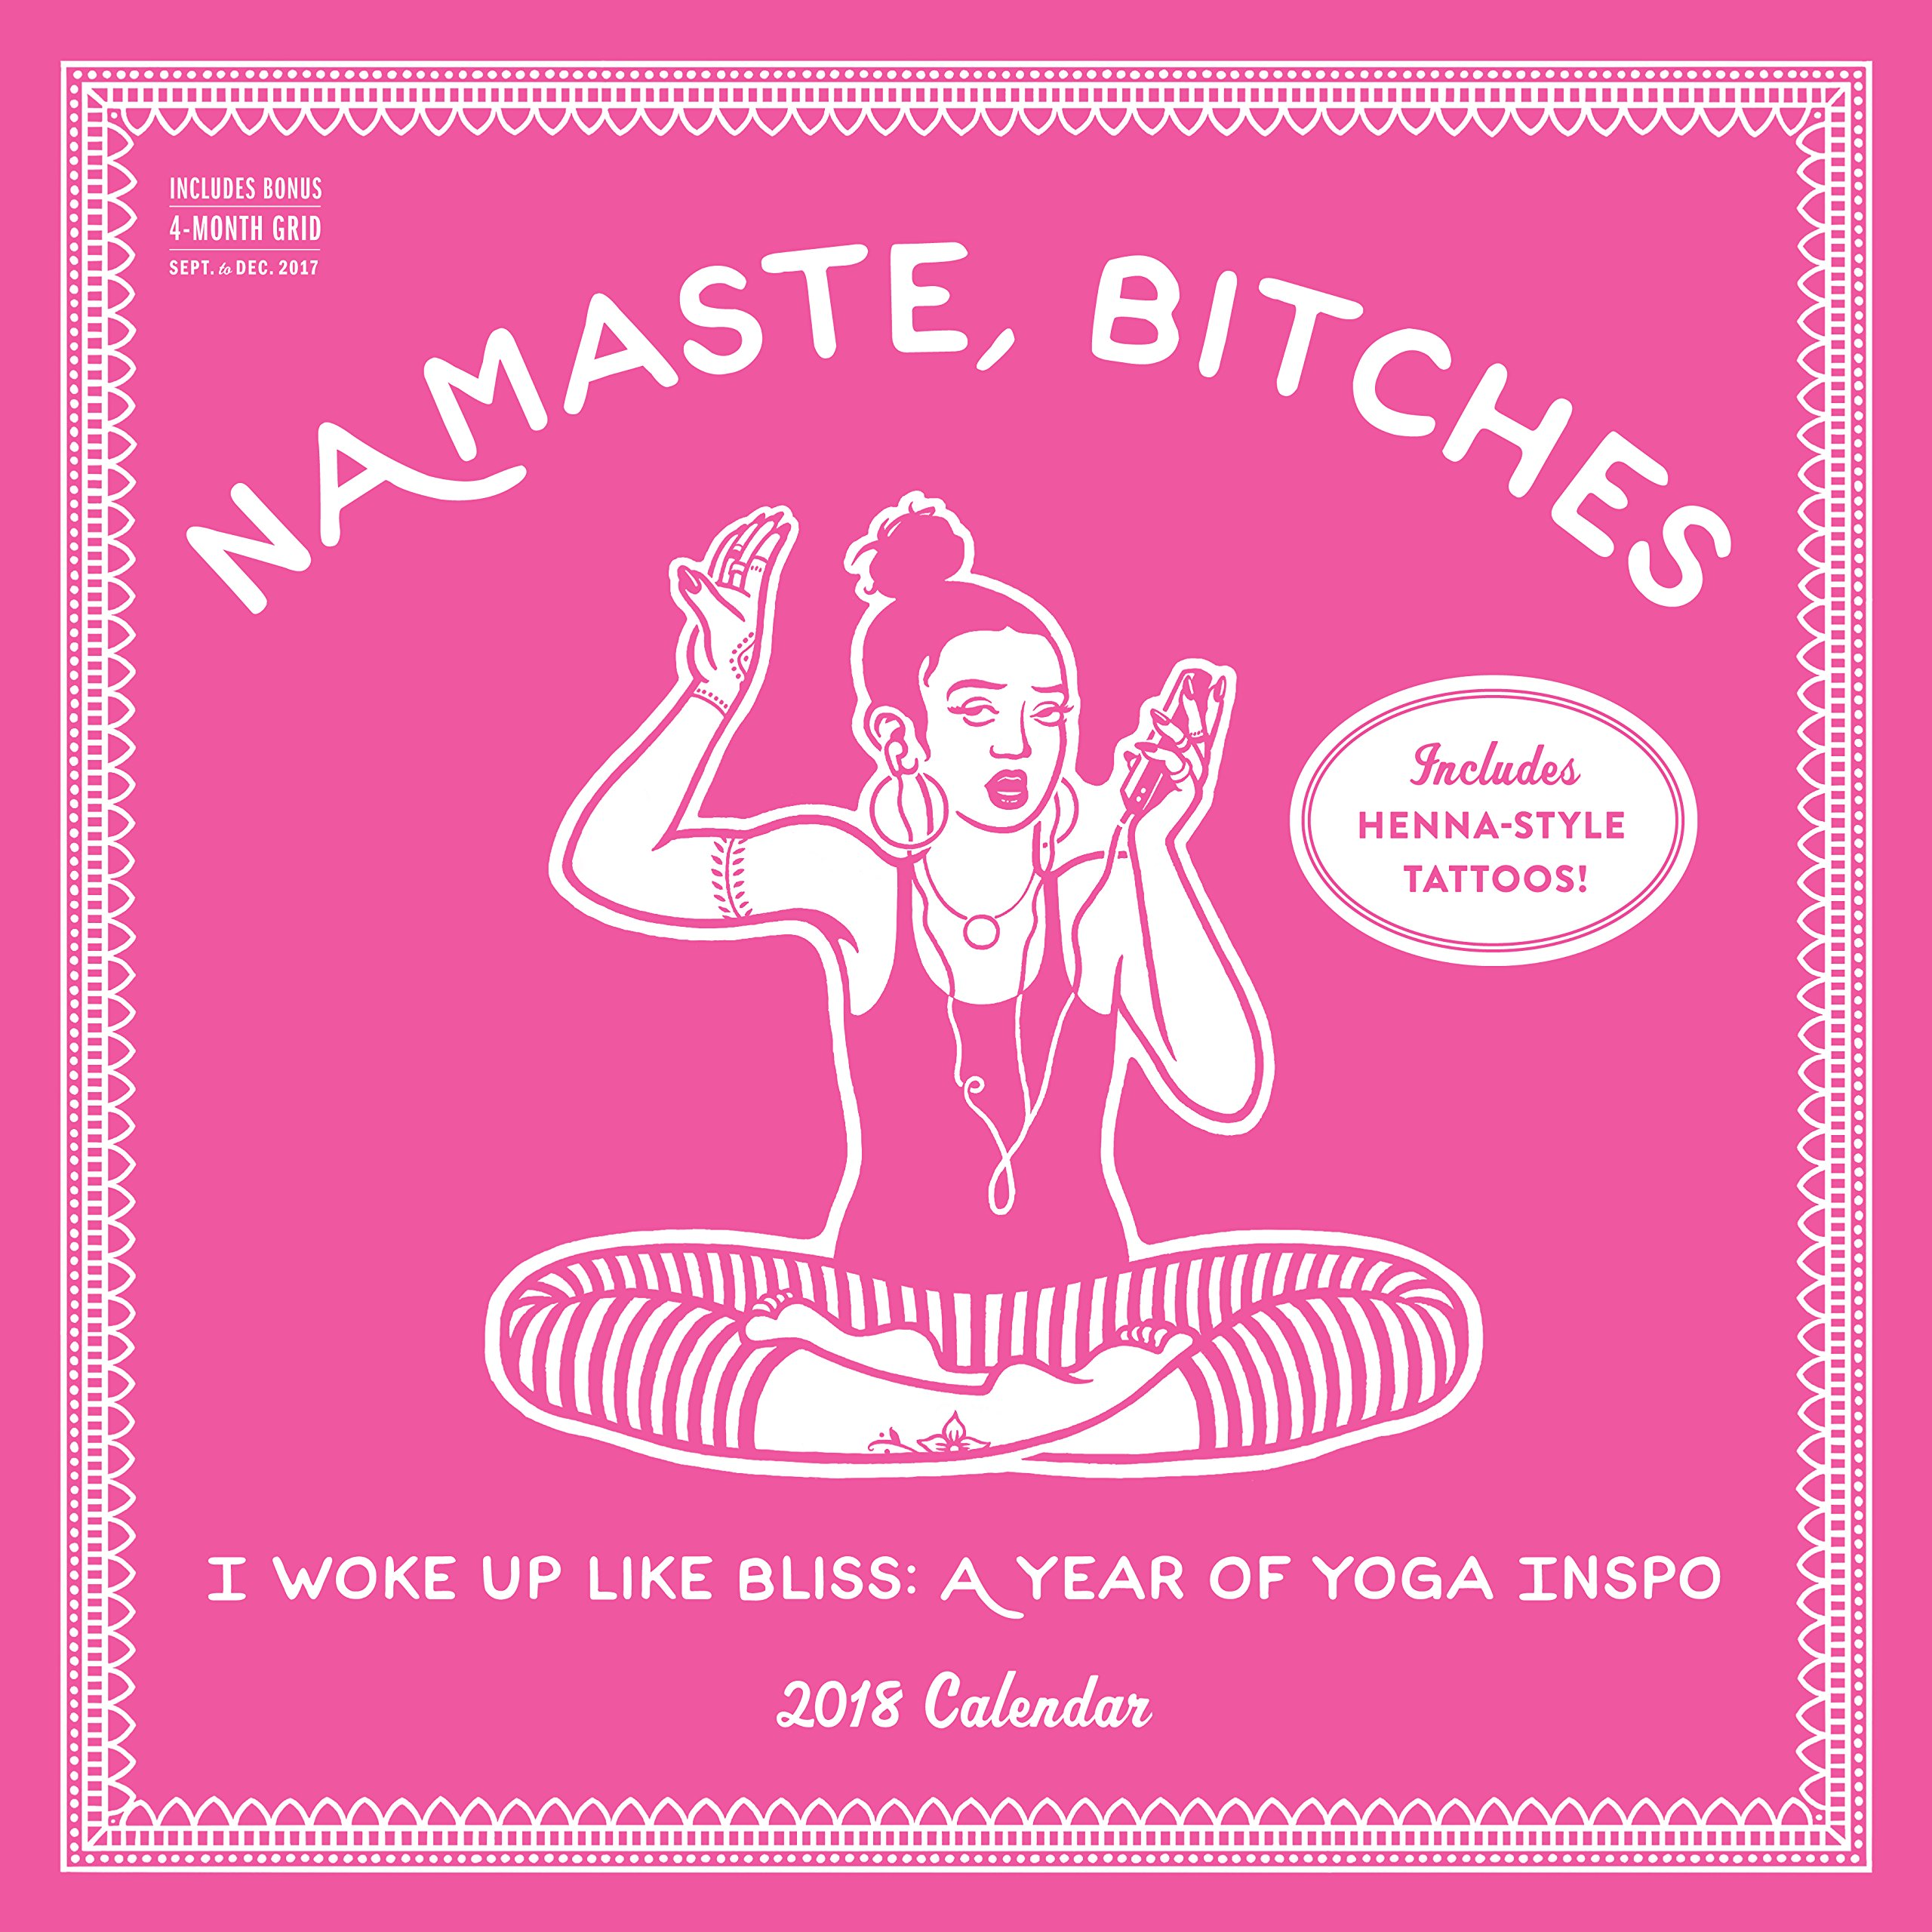 Namaste, Bitches Wall Calendar 2018: I Woke Up Like Bliss: A Year of Yoga Inspo Calendar – Wall Calendar, July 20, 2017 Workman Publishing Workman Publishing Company 1523501774 Form - Pictorial